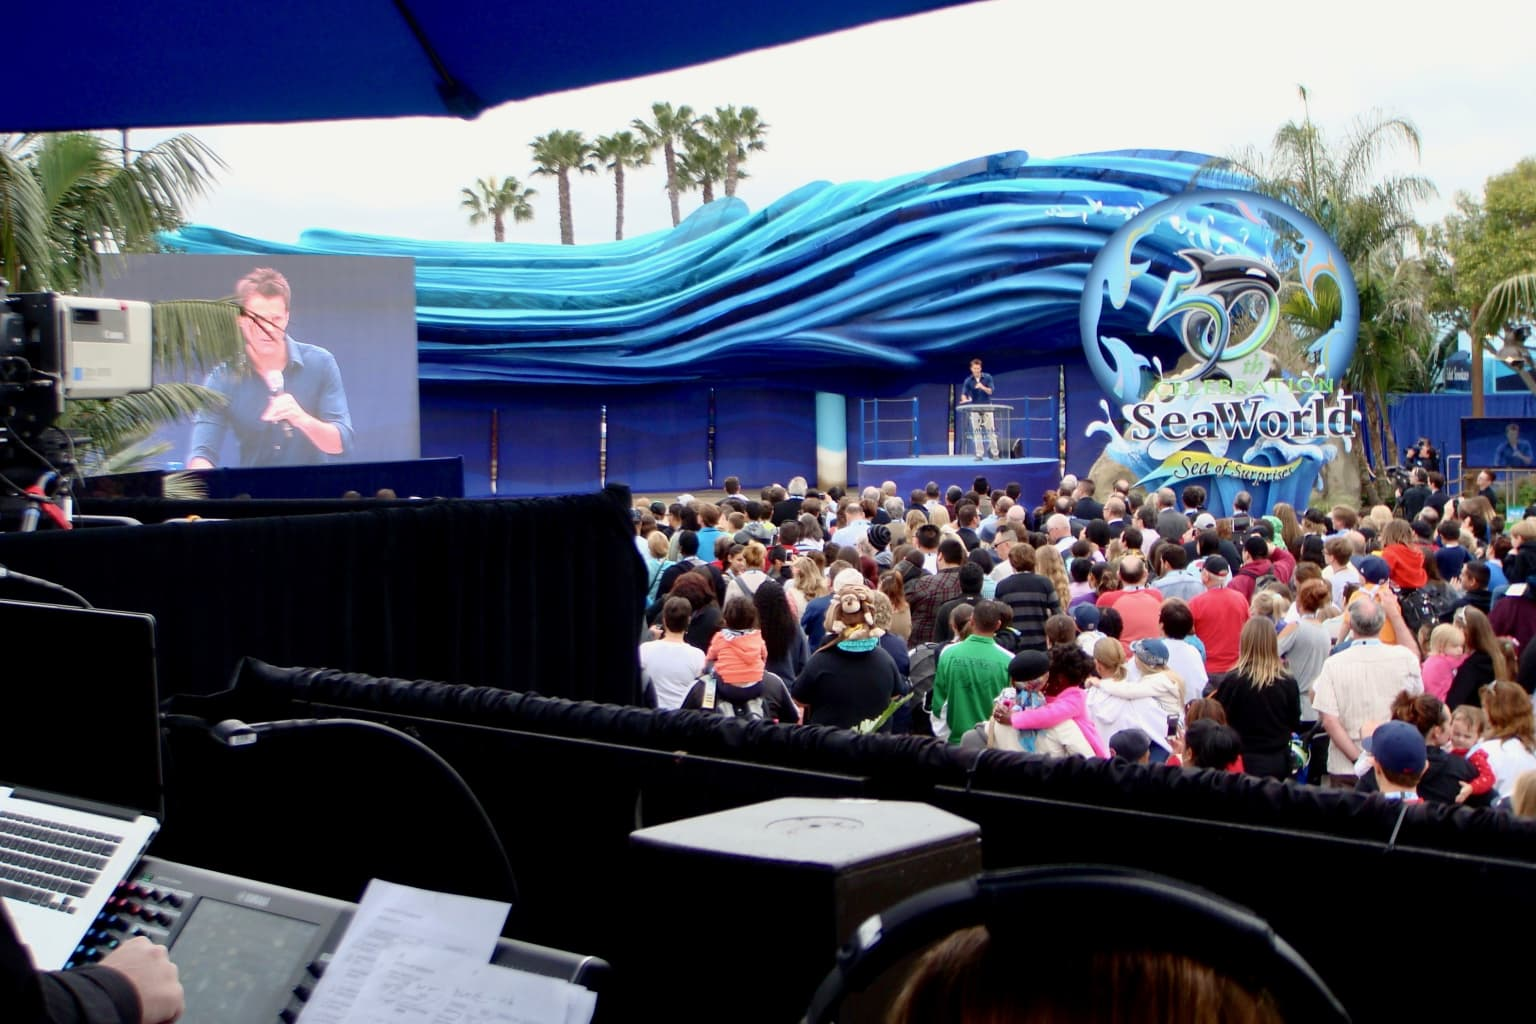 Milestone Events for SeaWorld